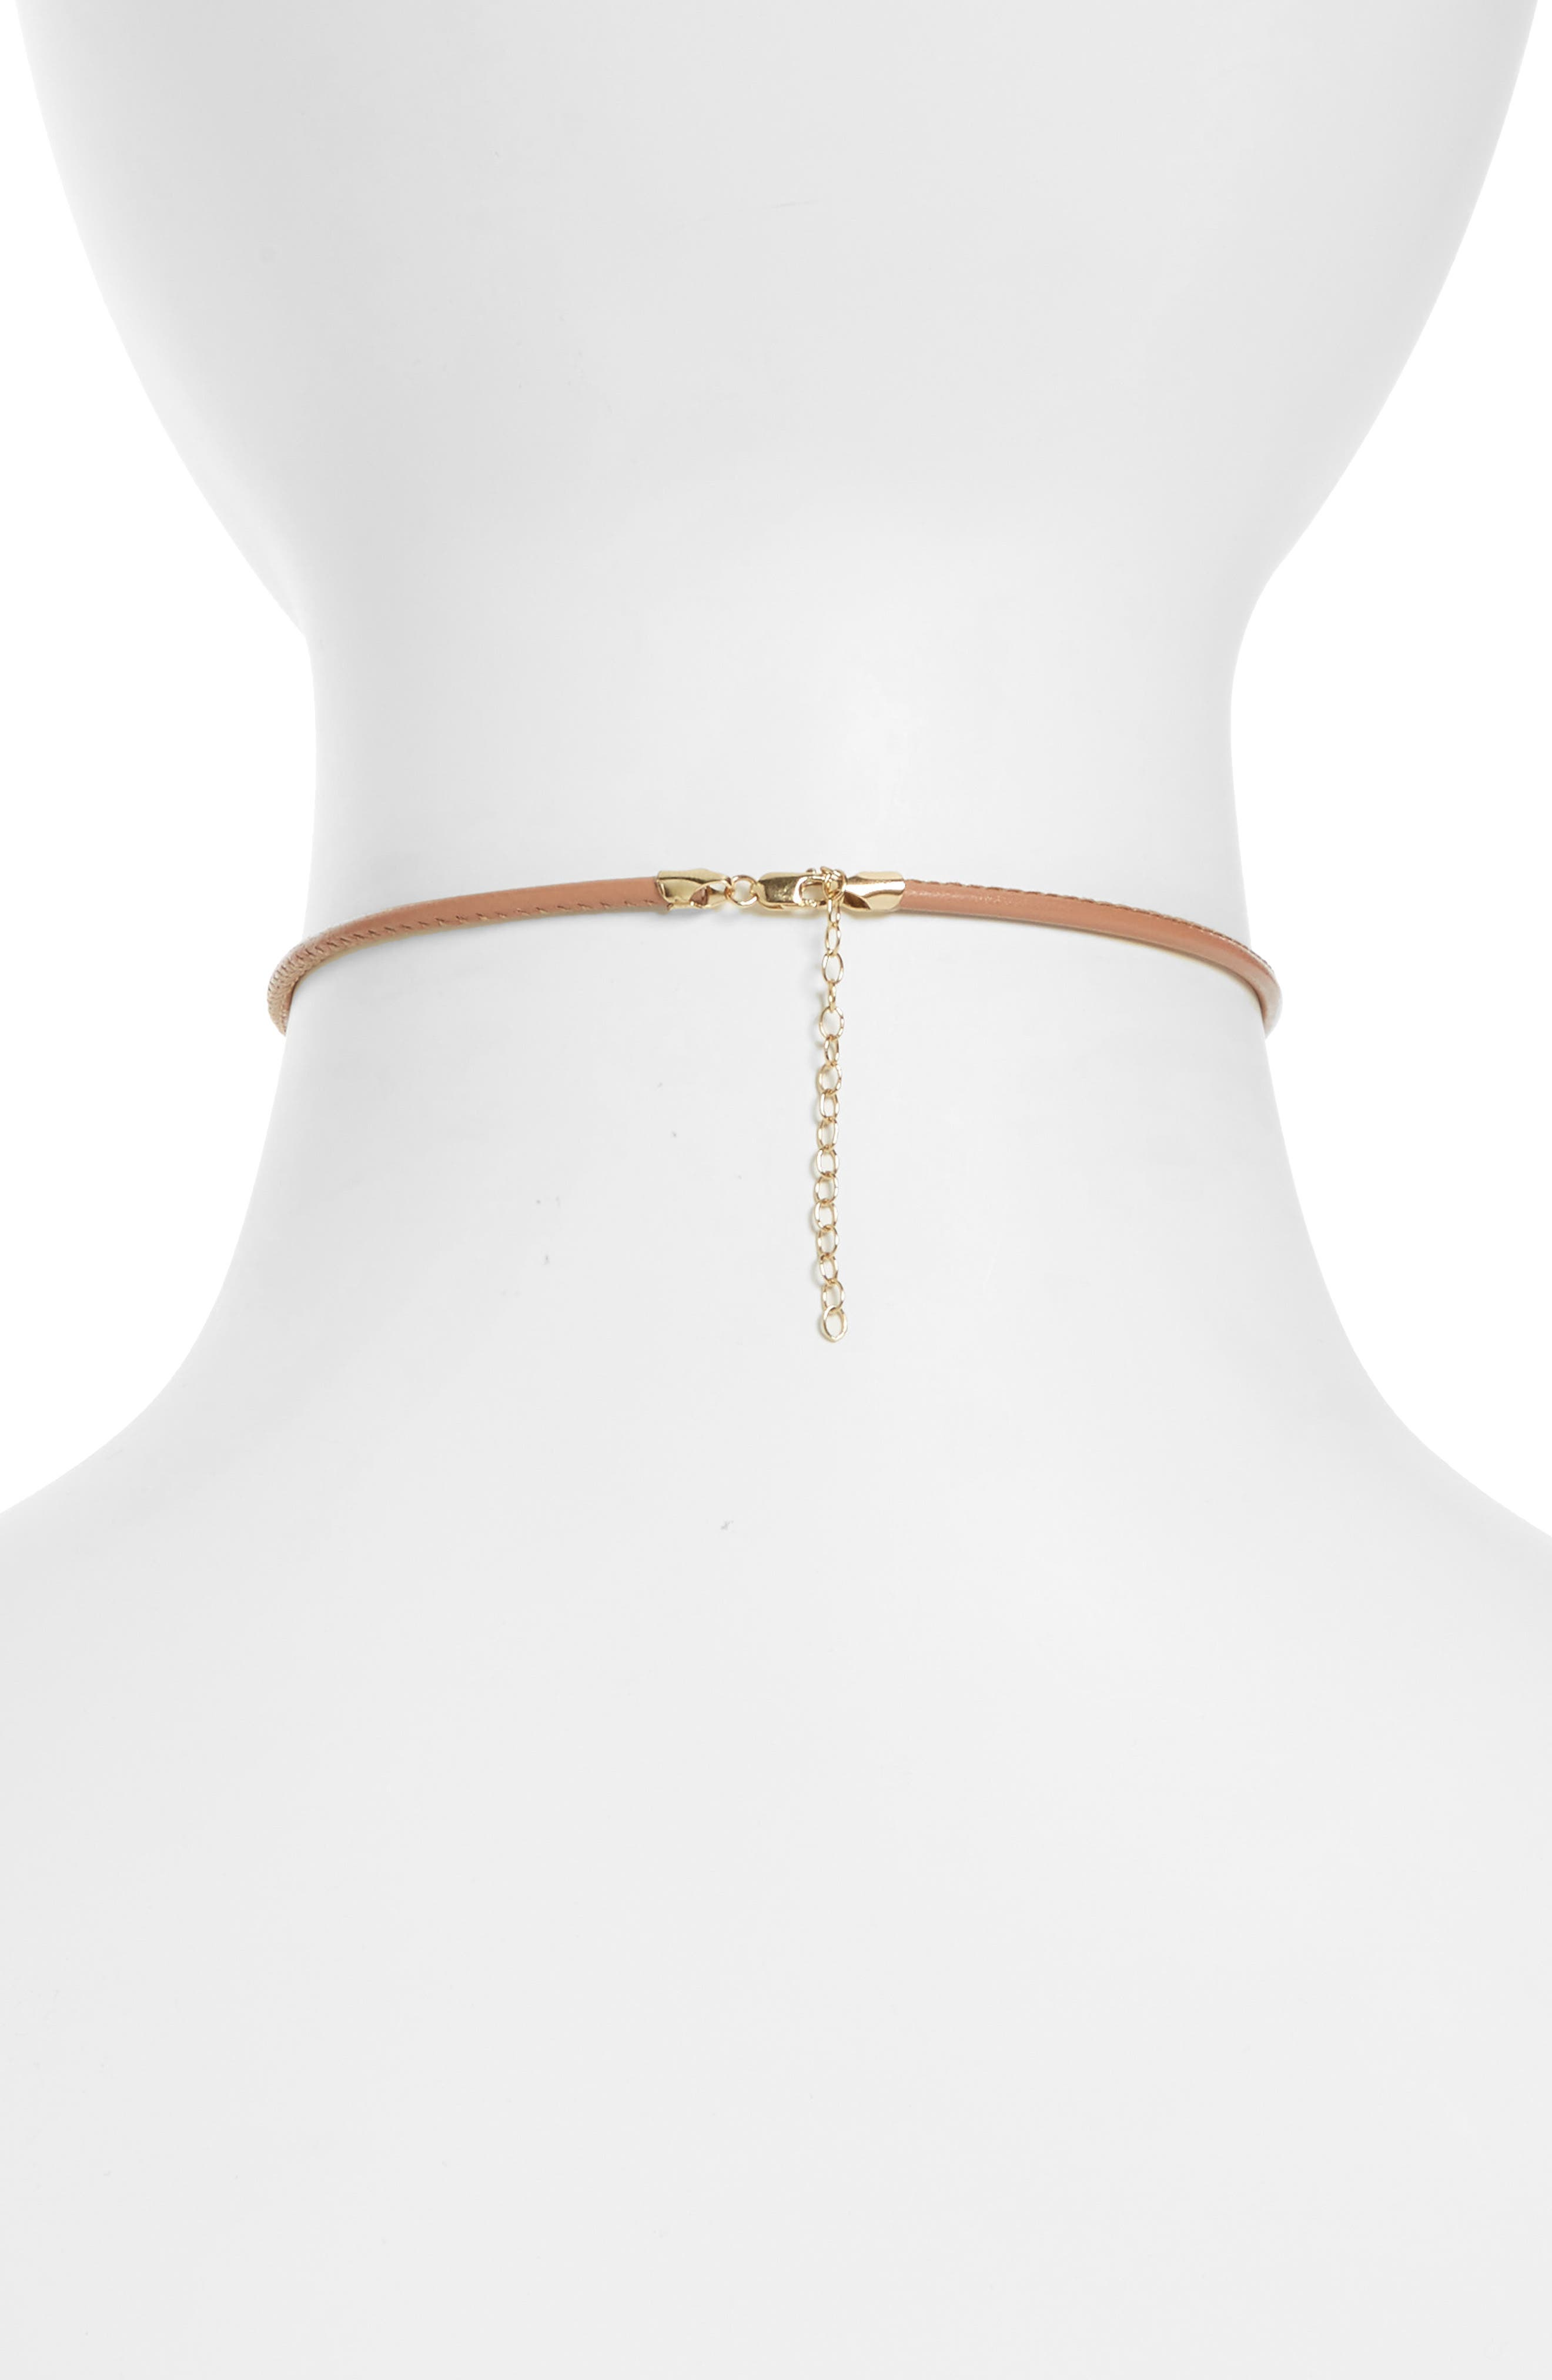 Leather & Pearl Choker,                             Alternate thumbnail 3, color,                             NEUTRAL LEATHER/ WHITE PEARL